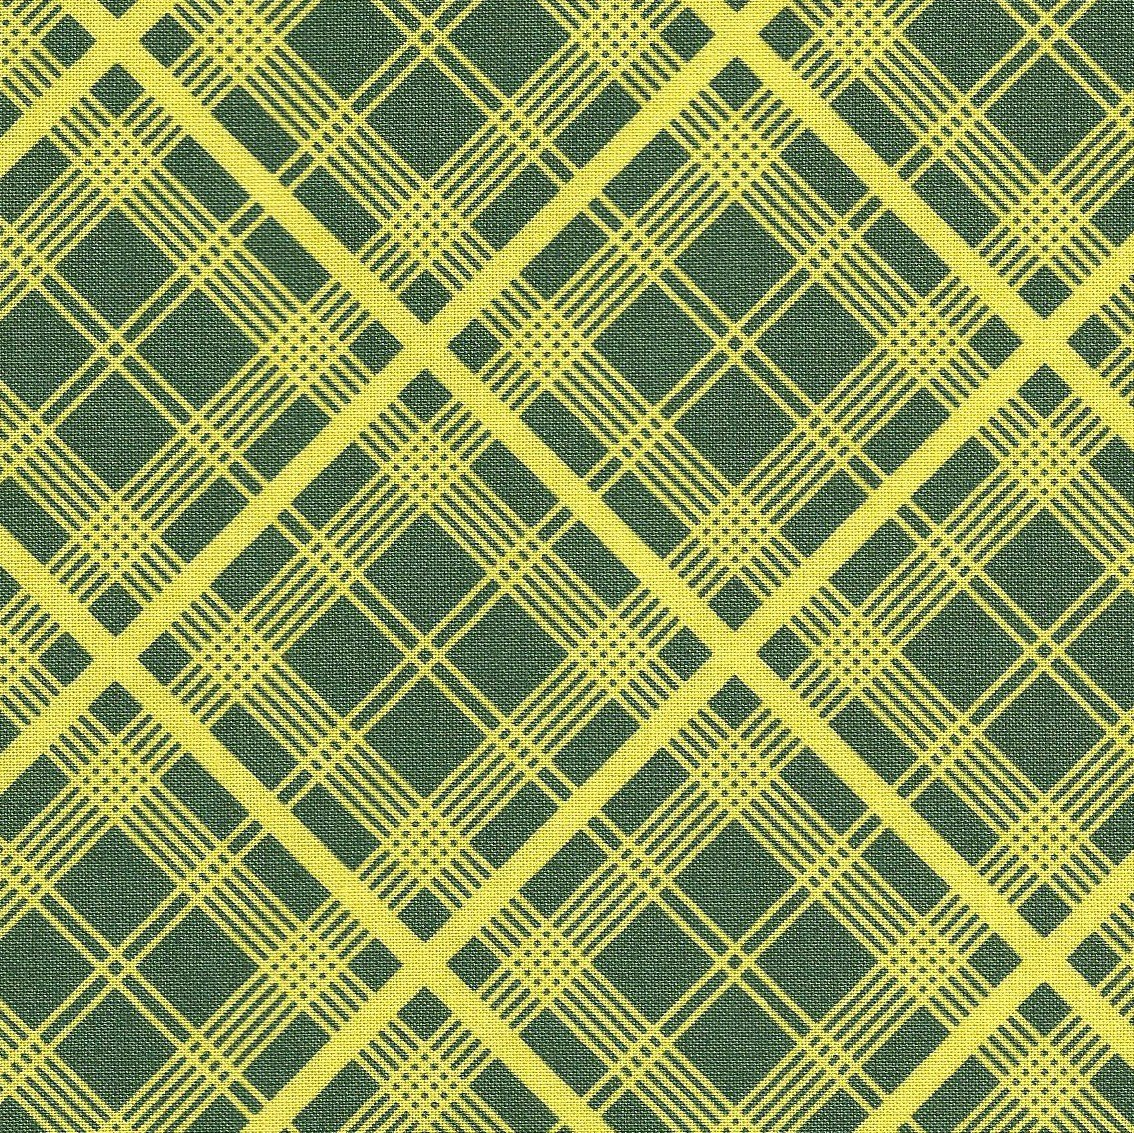 PWDS032 Simple Plaid in Lime